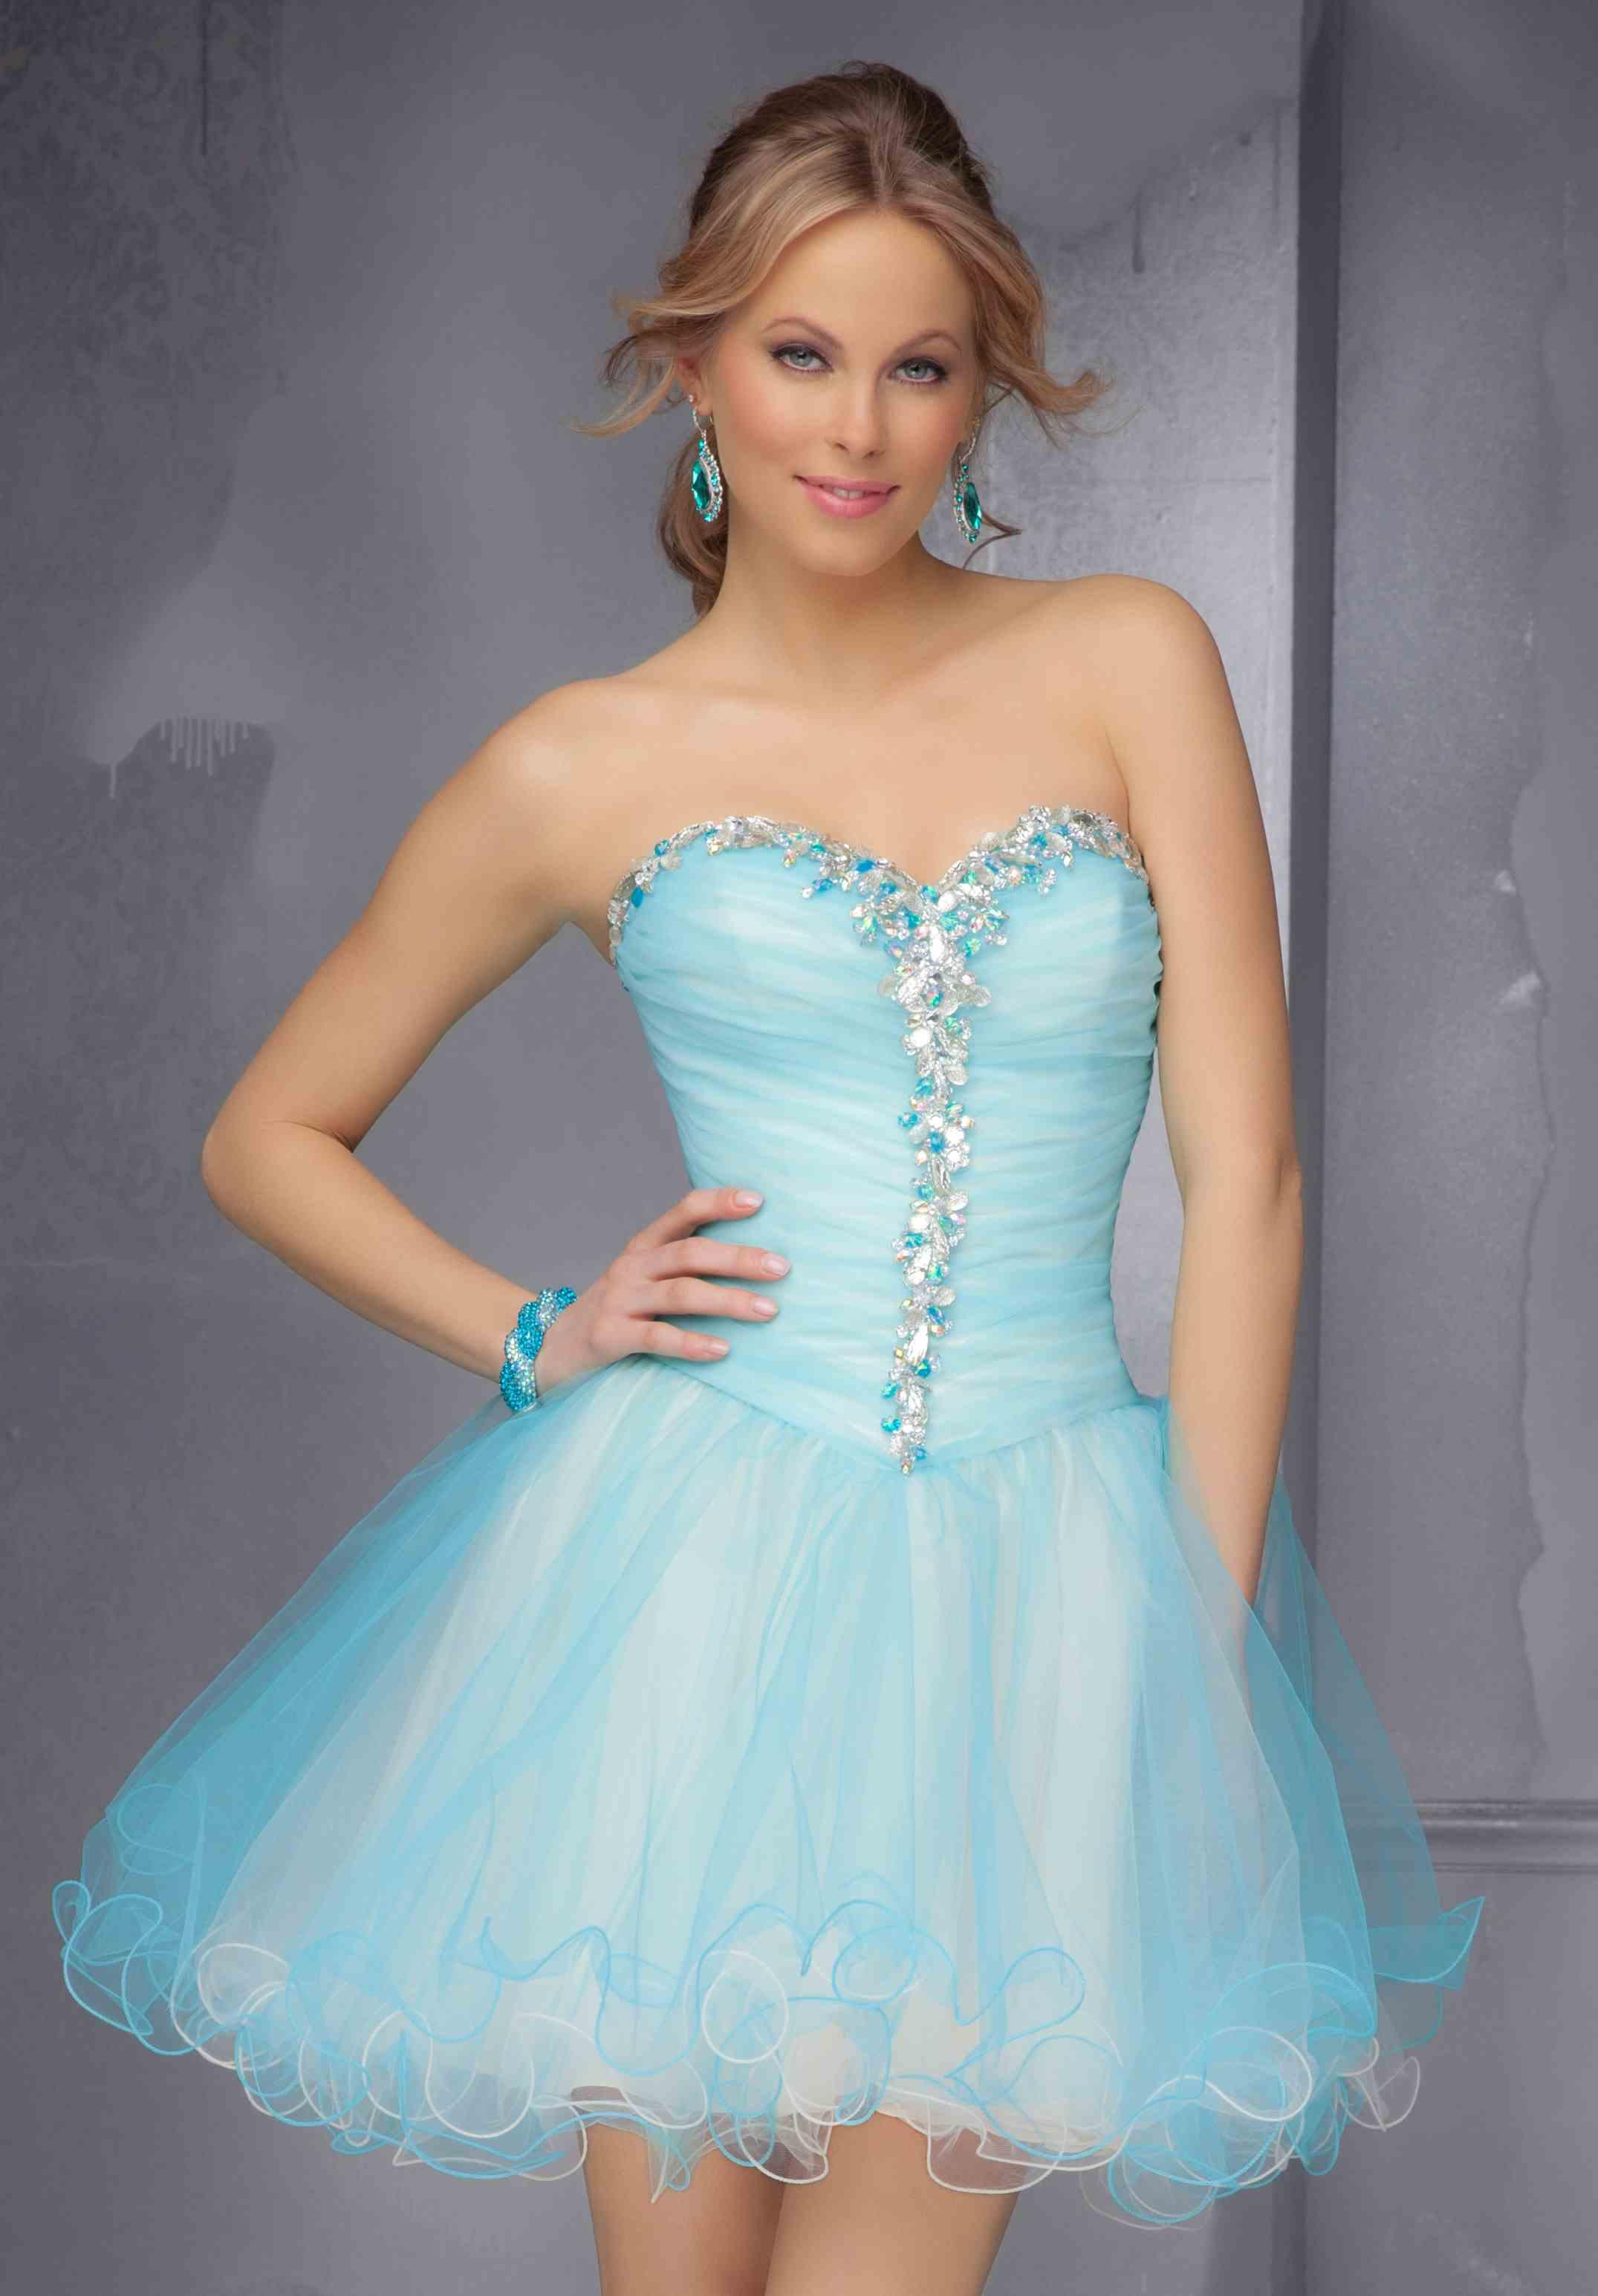 Prom Dresses Archives - Page 247 of 515 - Holiday Dresses